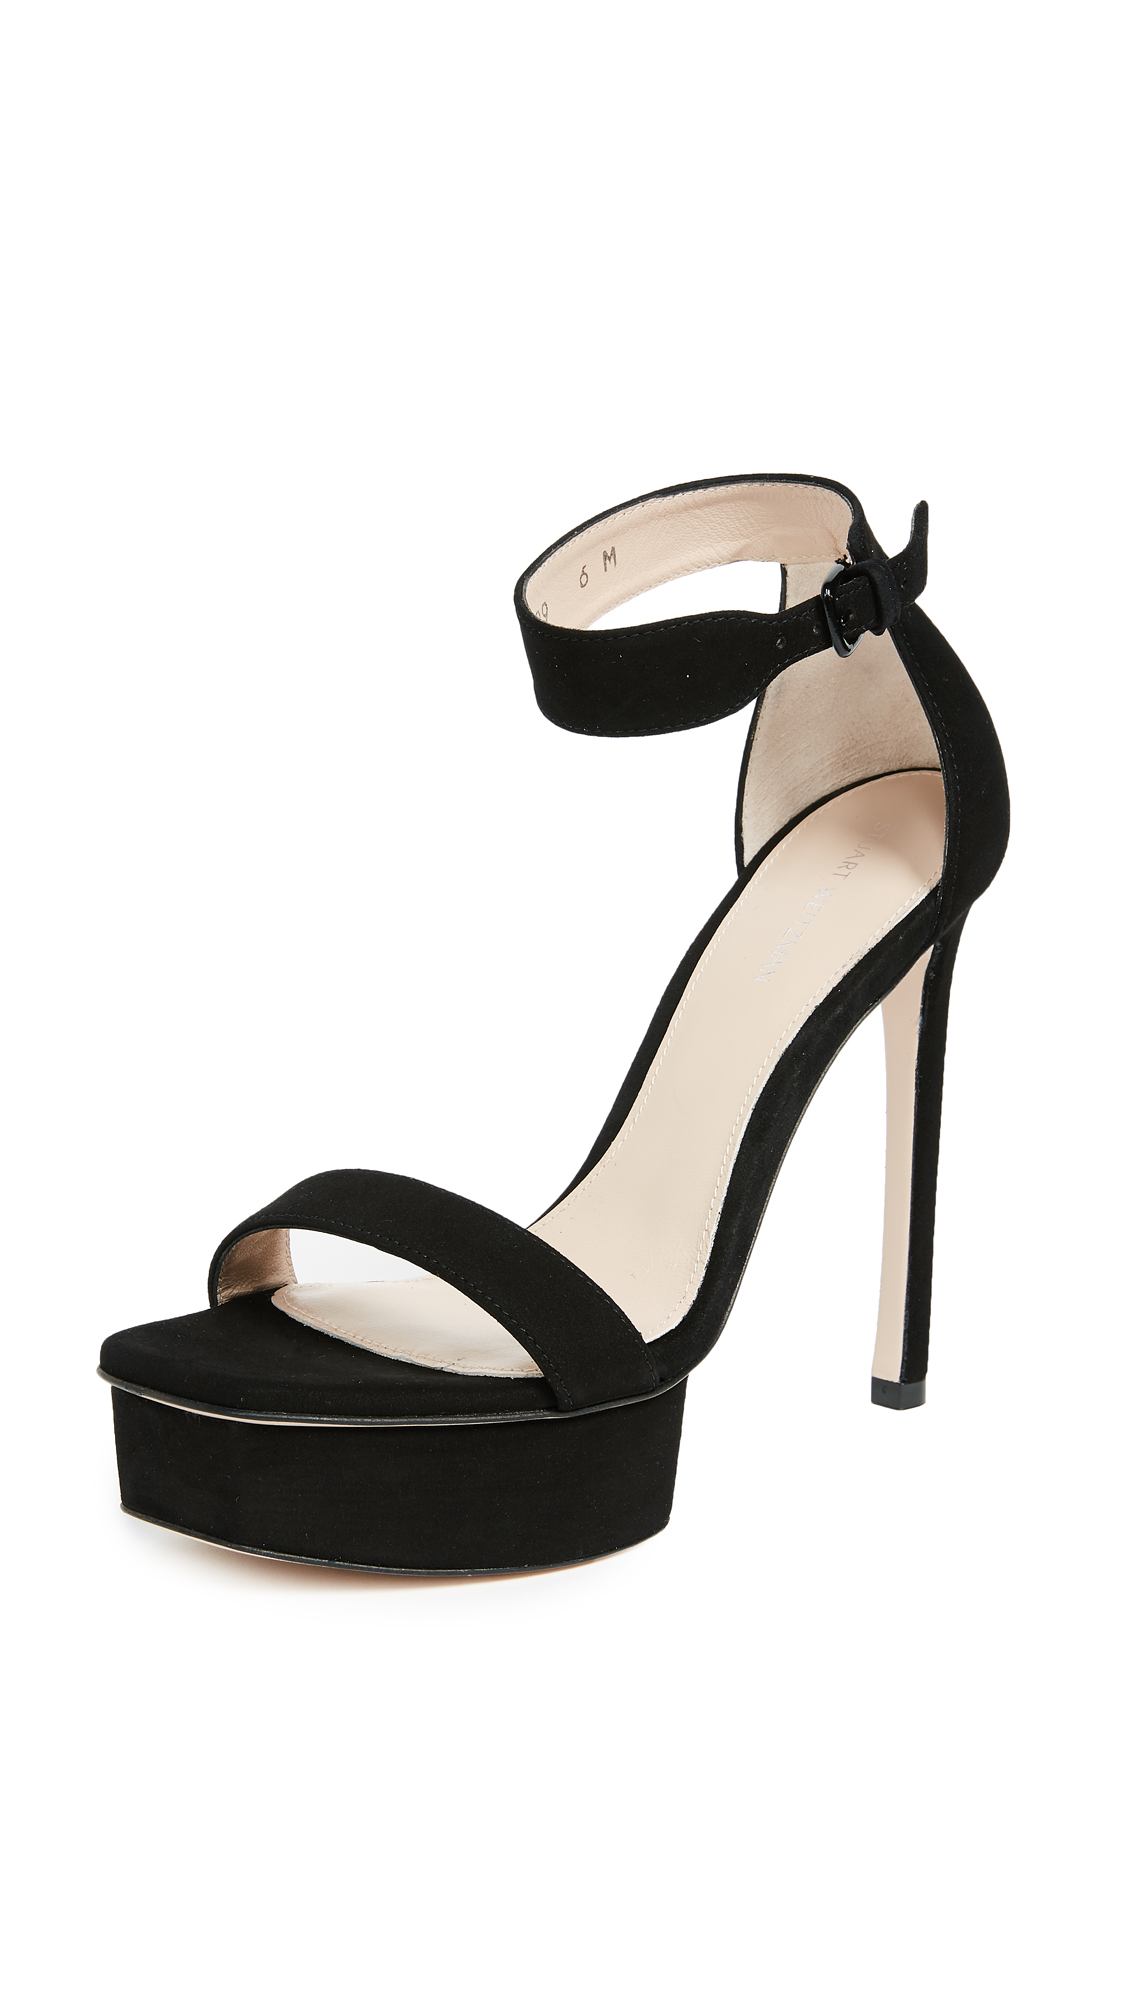 Stuart Weitzman Backup Platform Sandals - Black